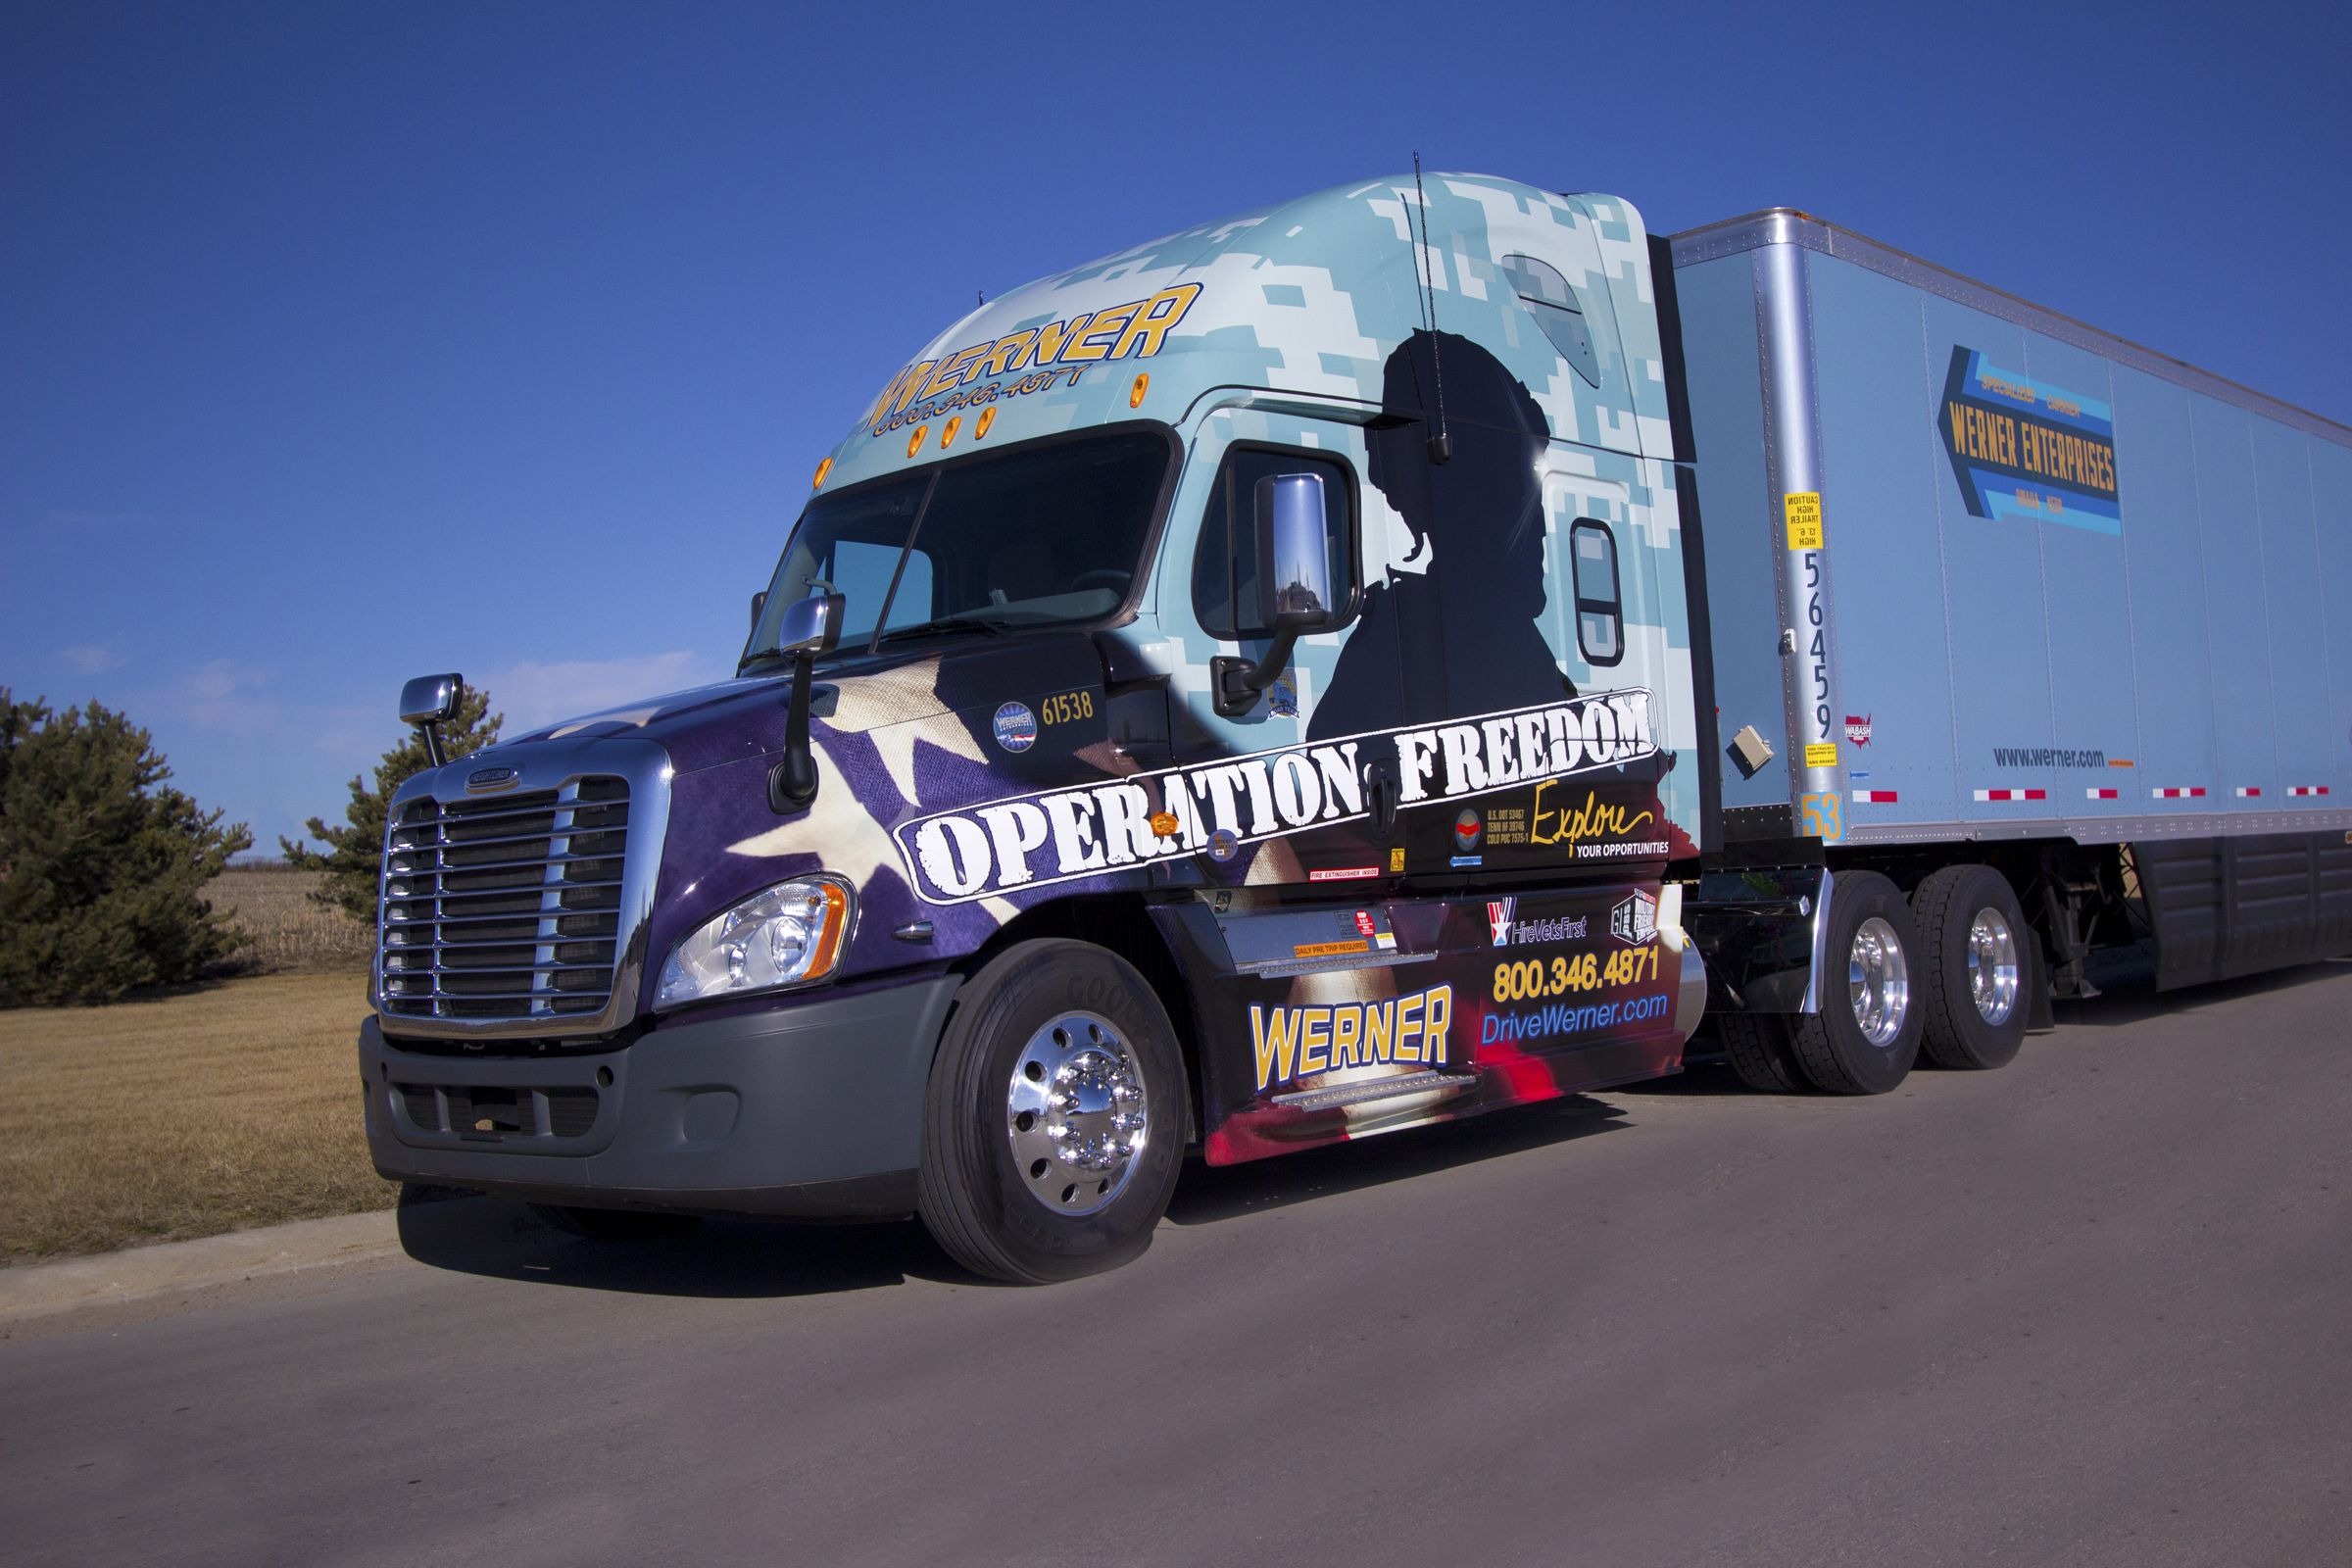 werner enterprises operation freedom truck